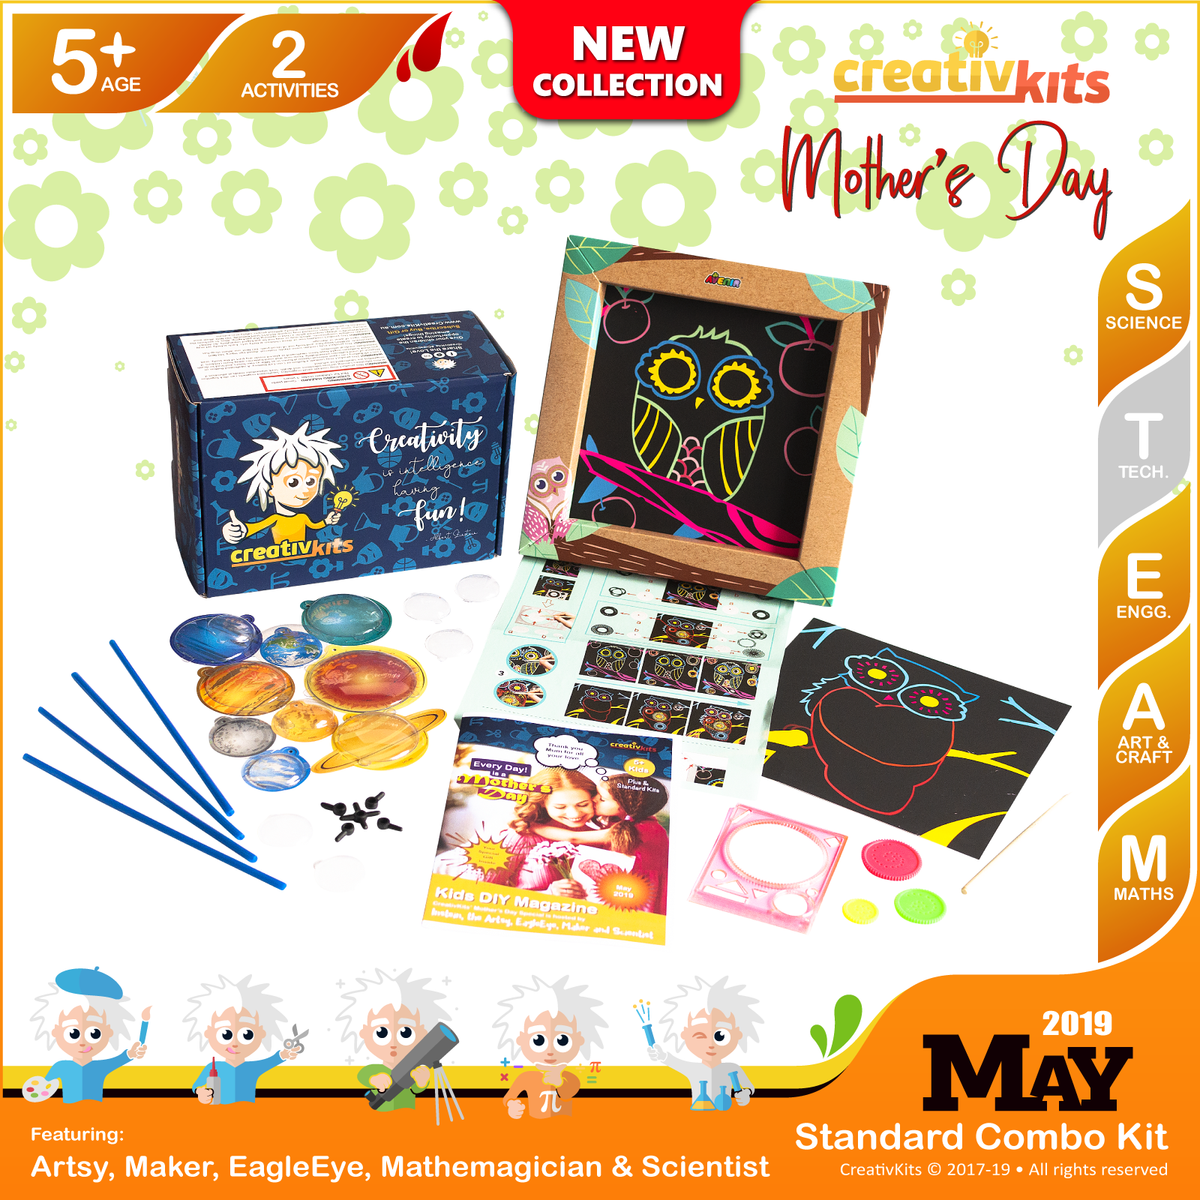 May Standard Combo Kit • Age 5 plus • Make Your Own Solar System Mobile and Spiro Art Painting